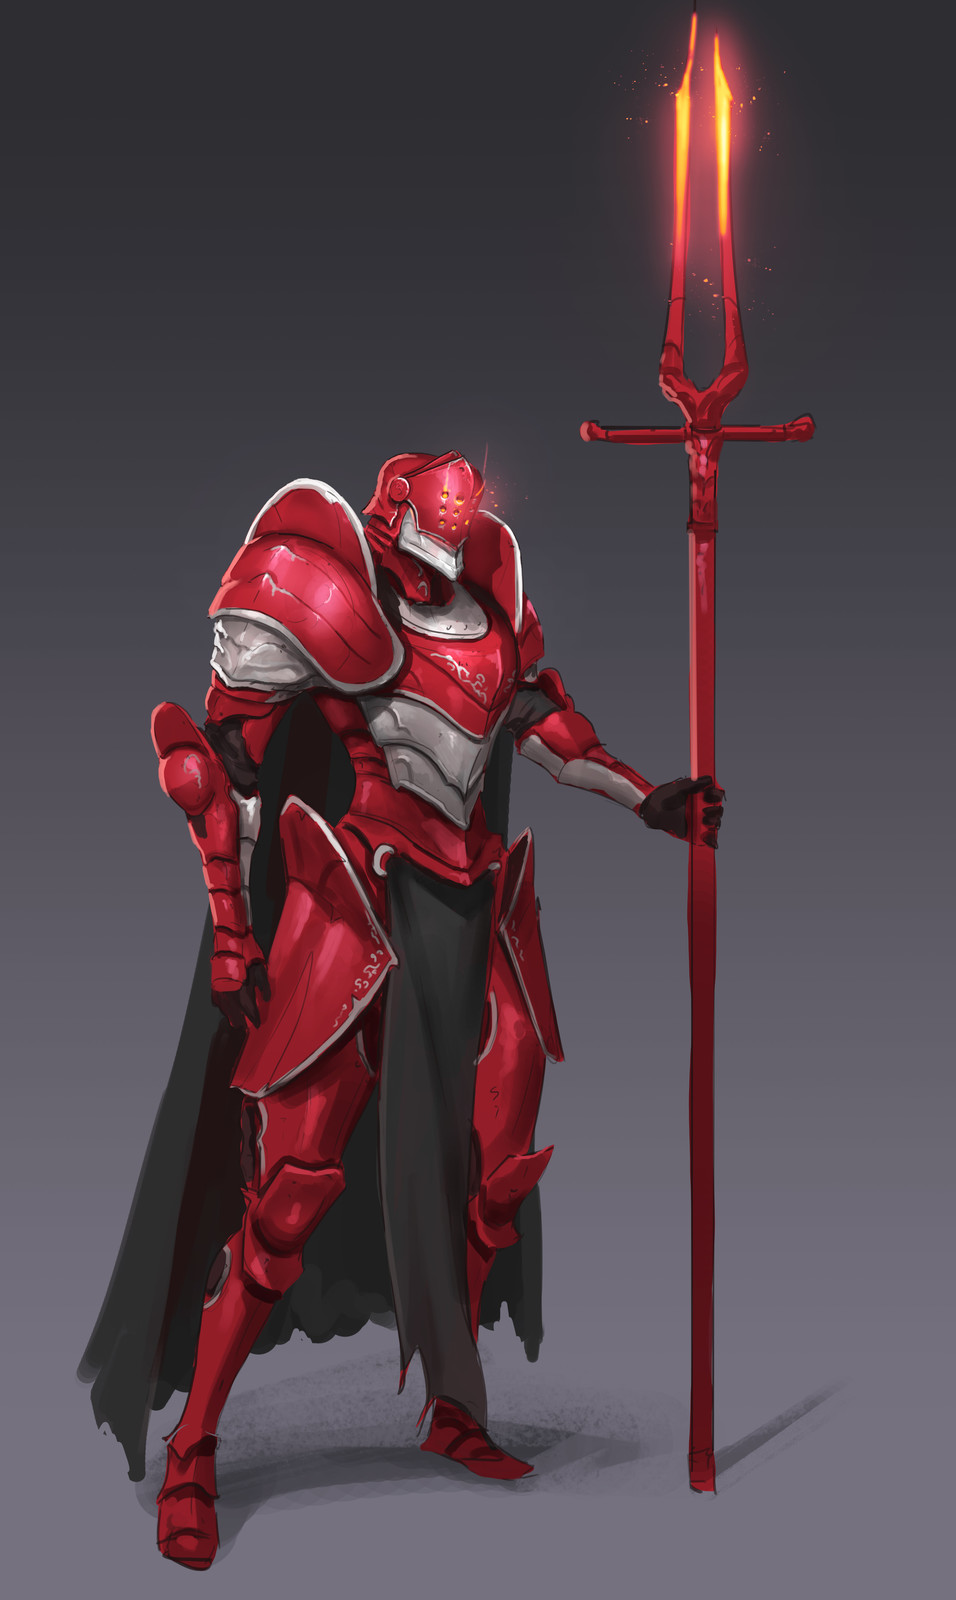 Eva unit 02 medieval redesign